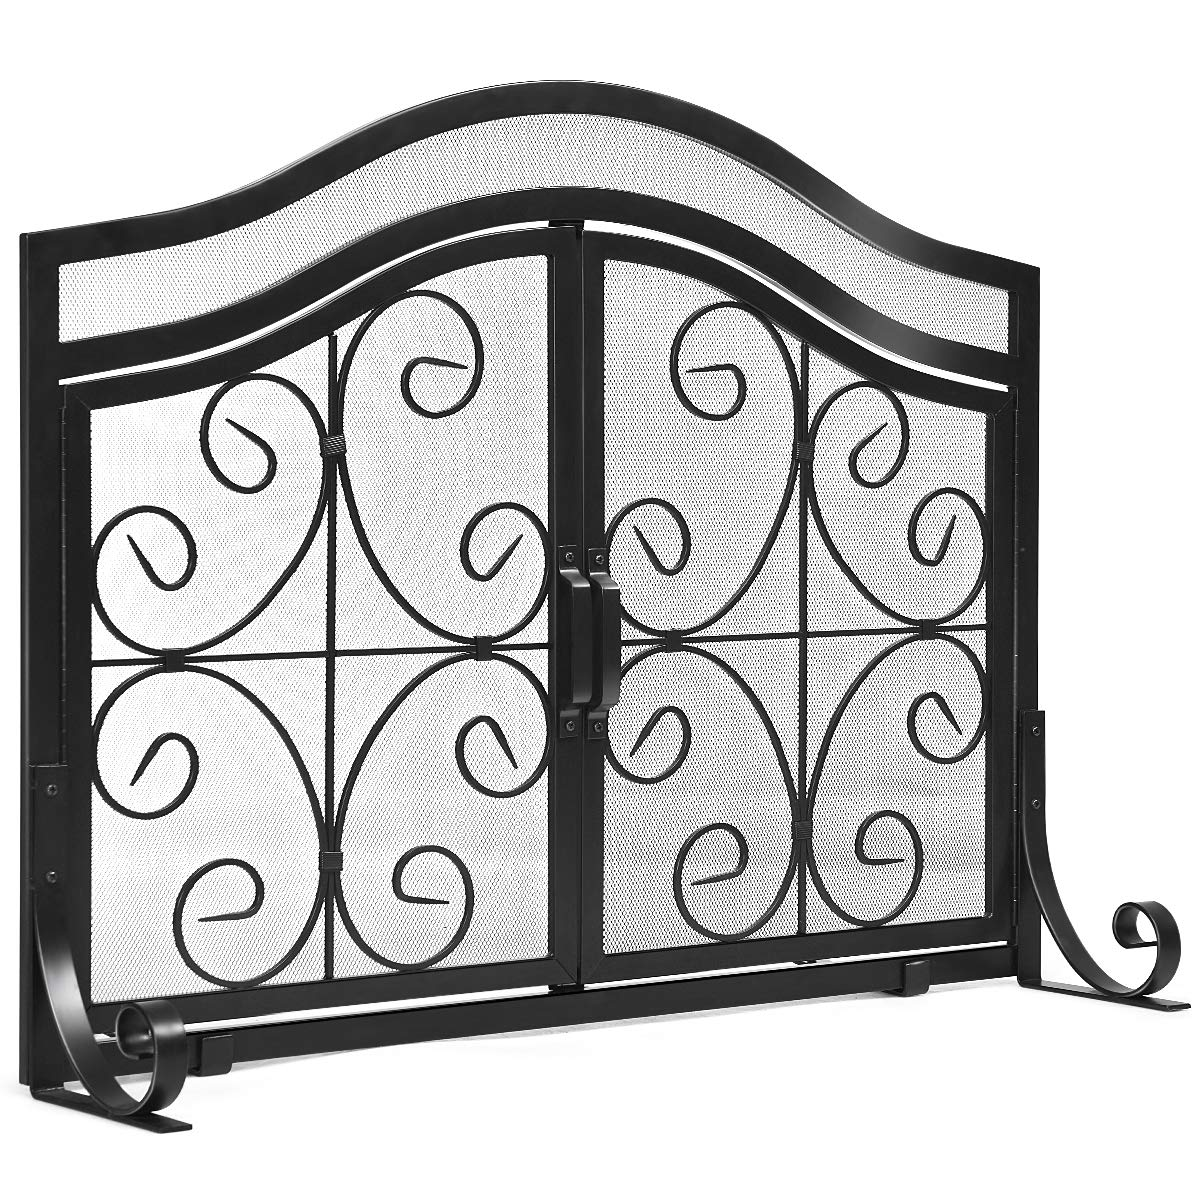 Tangkula Fireplace Screen, with Hinged Two-Doors Large Flat Guard Screens, Wrought Iron Mesh, Steel Crest Fireplace Screen with Wrought Iron, Baby Safe Spark Guard Protector (44''L x 15''W x 33. 5''H) by Tangkula